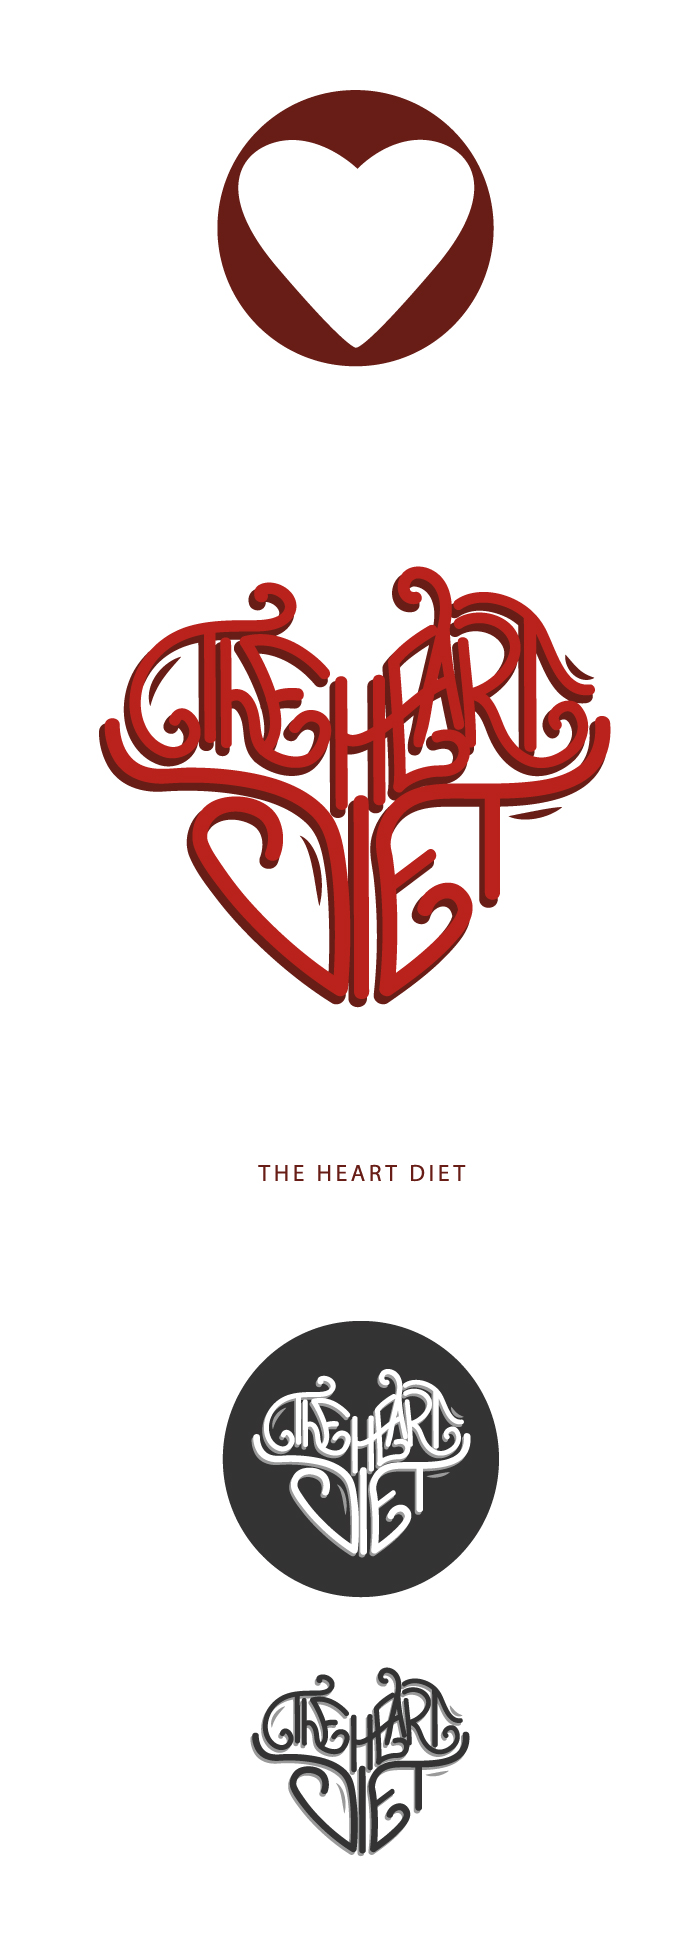 heart diet, heart, diet, logo, graphic design, graphic, diana petrarca, grafica